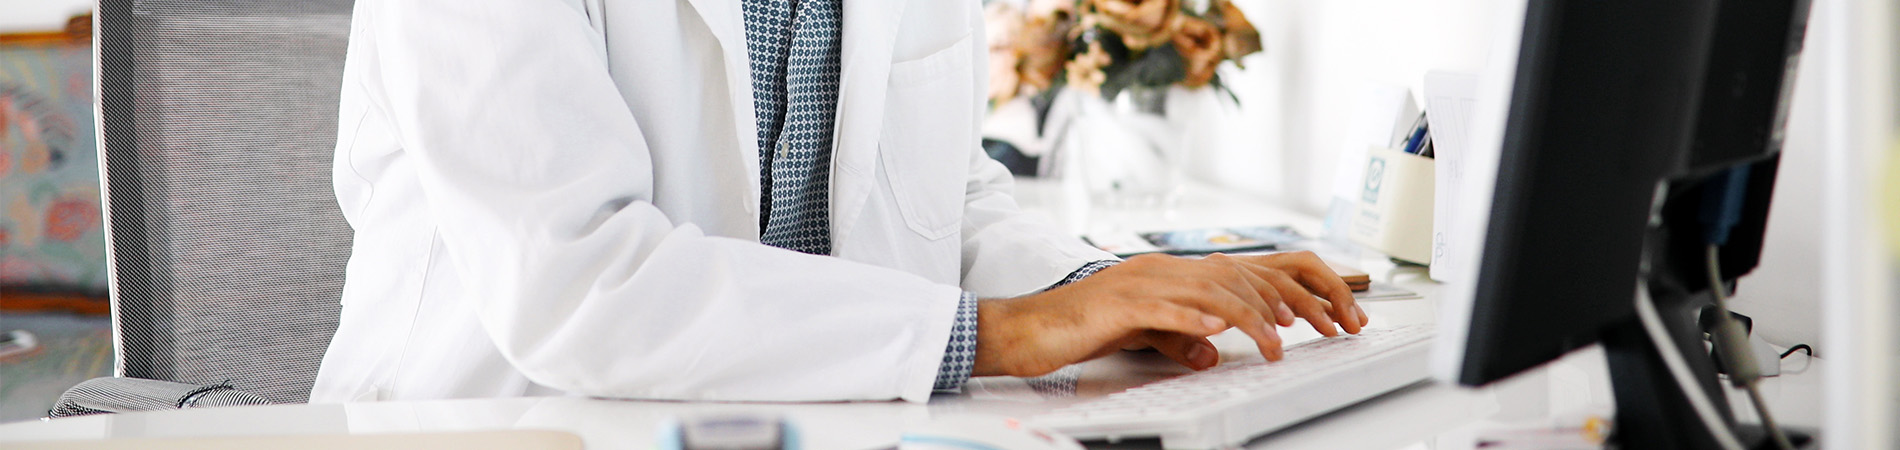 Happy male doctor staring at a computer screen avoiding HIPAA violations